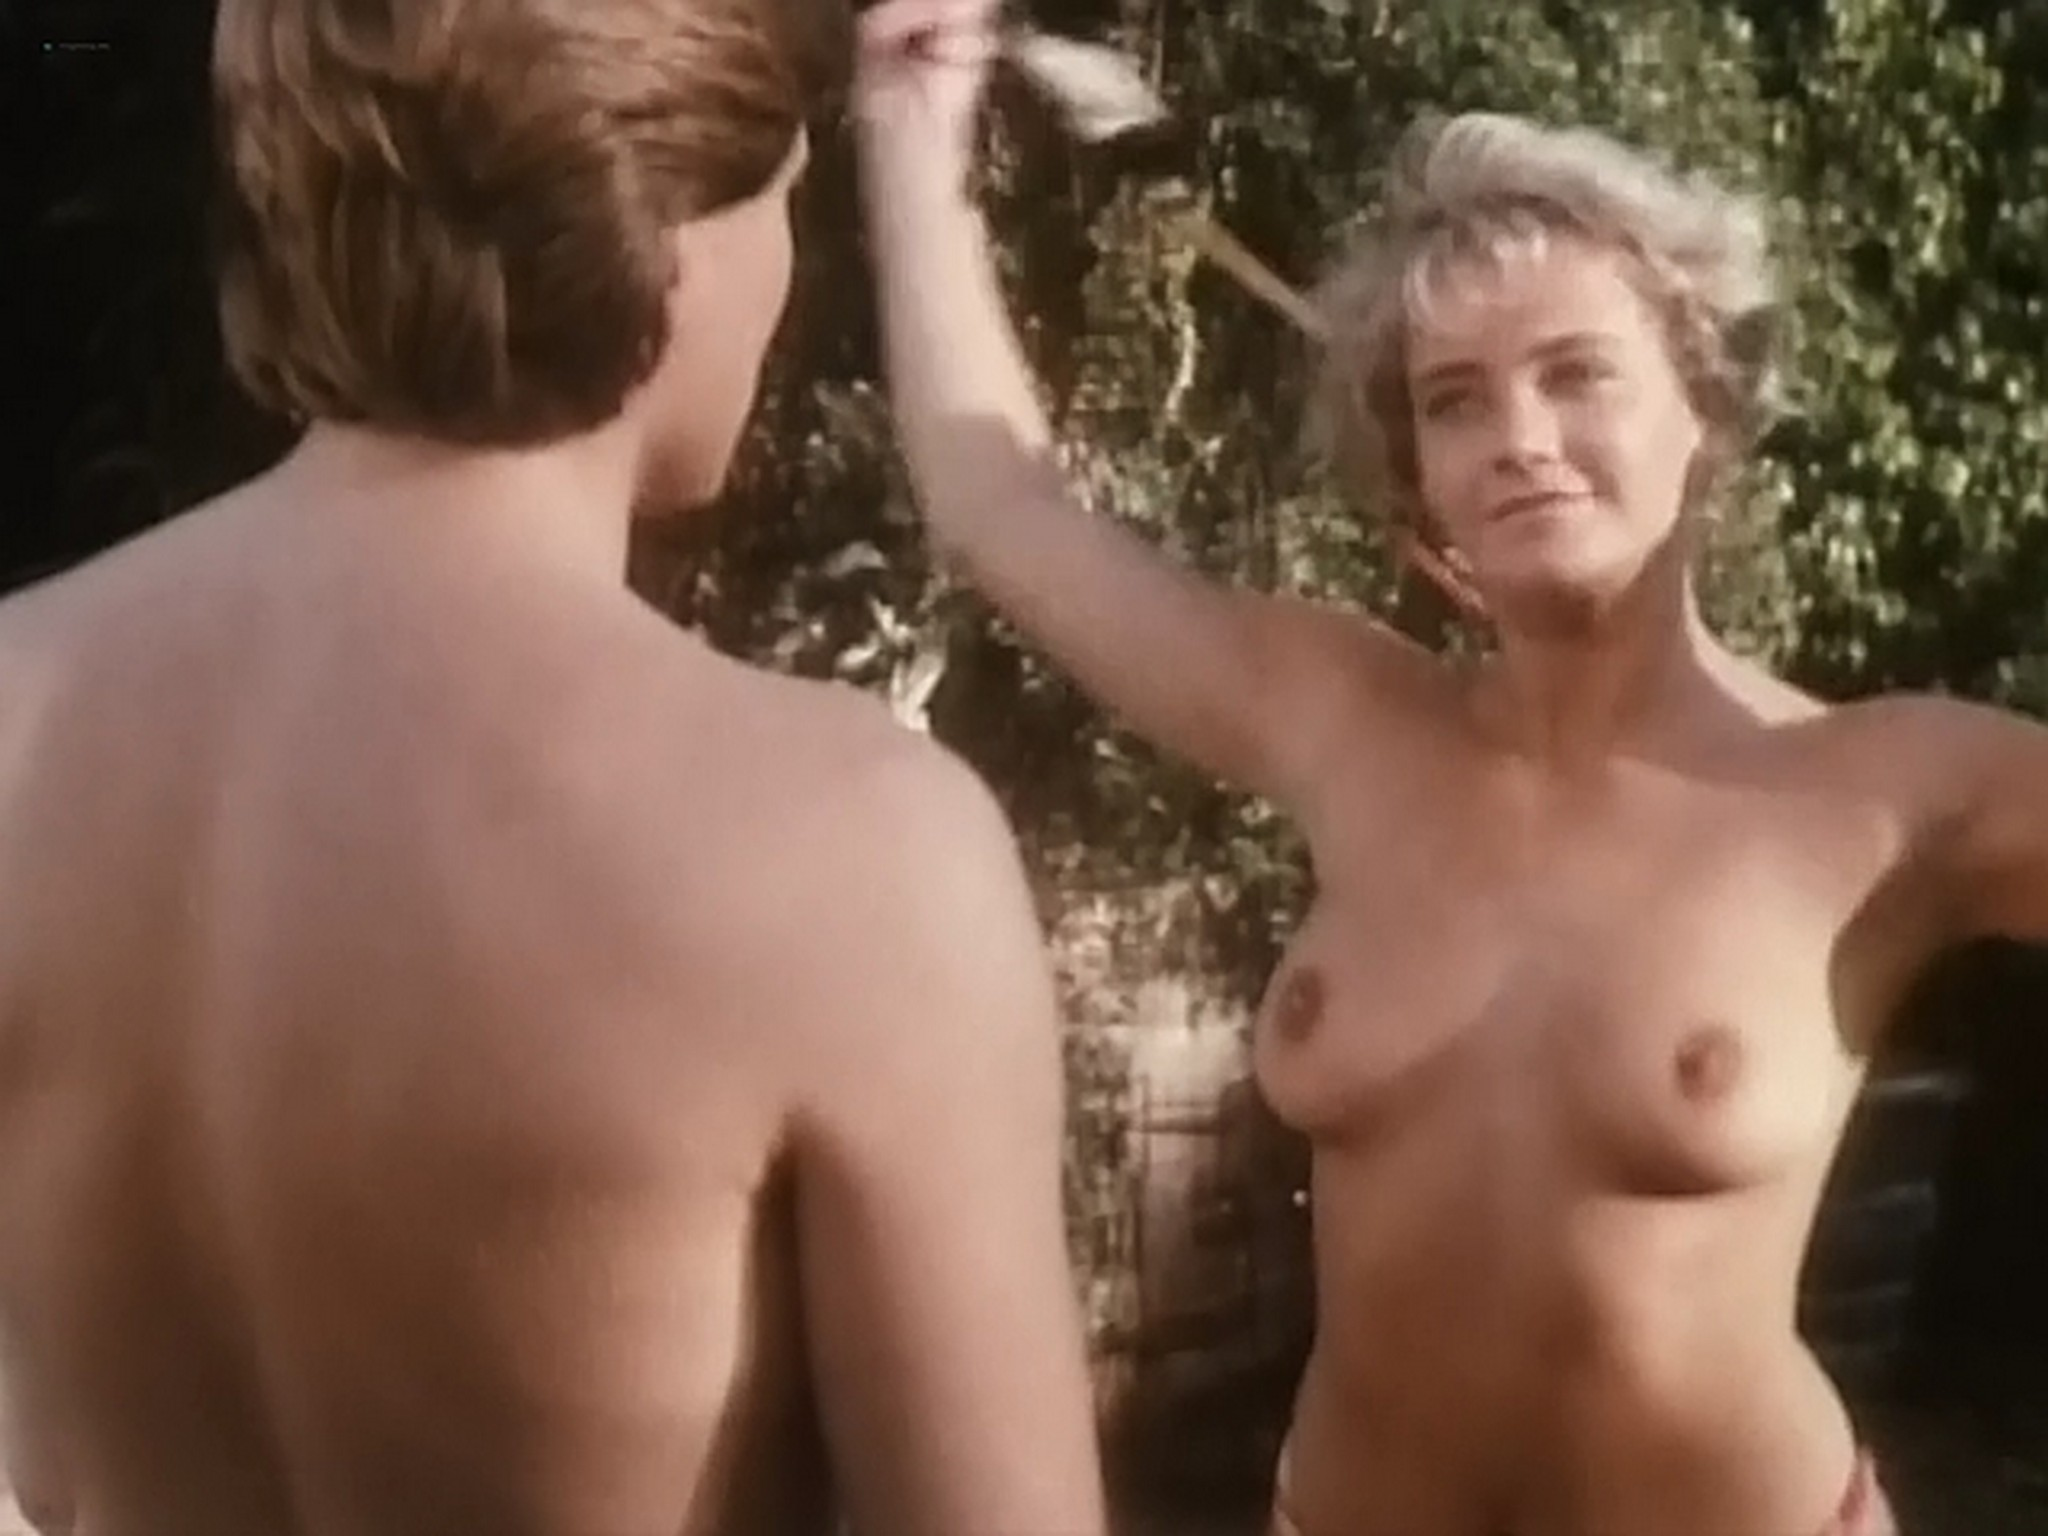 Kim Evenson nude full frontal Monique Gabrielle Sylvia Kristel all nude bush and full frontal The Big Bet 1985 DVDRip 12